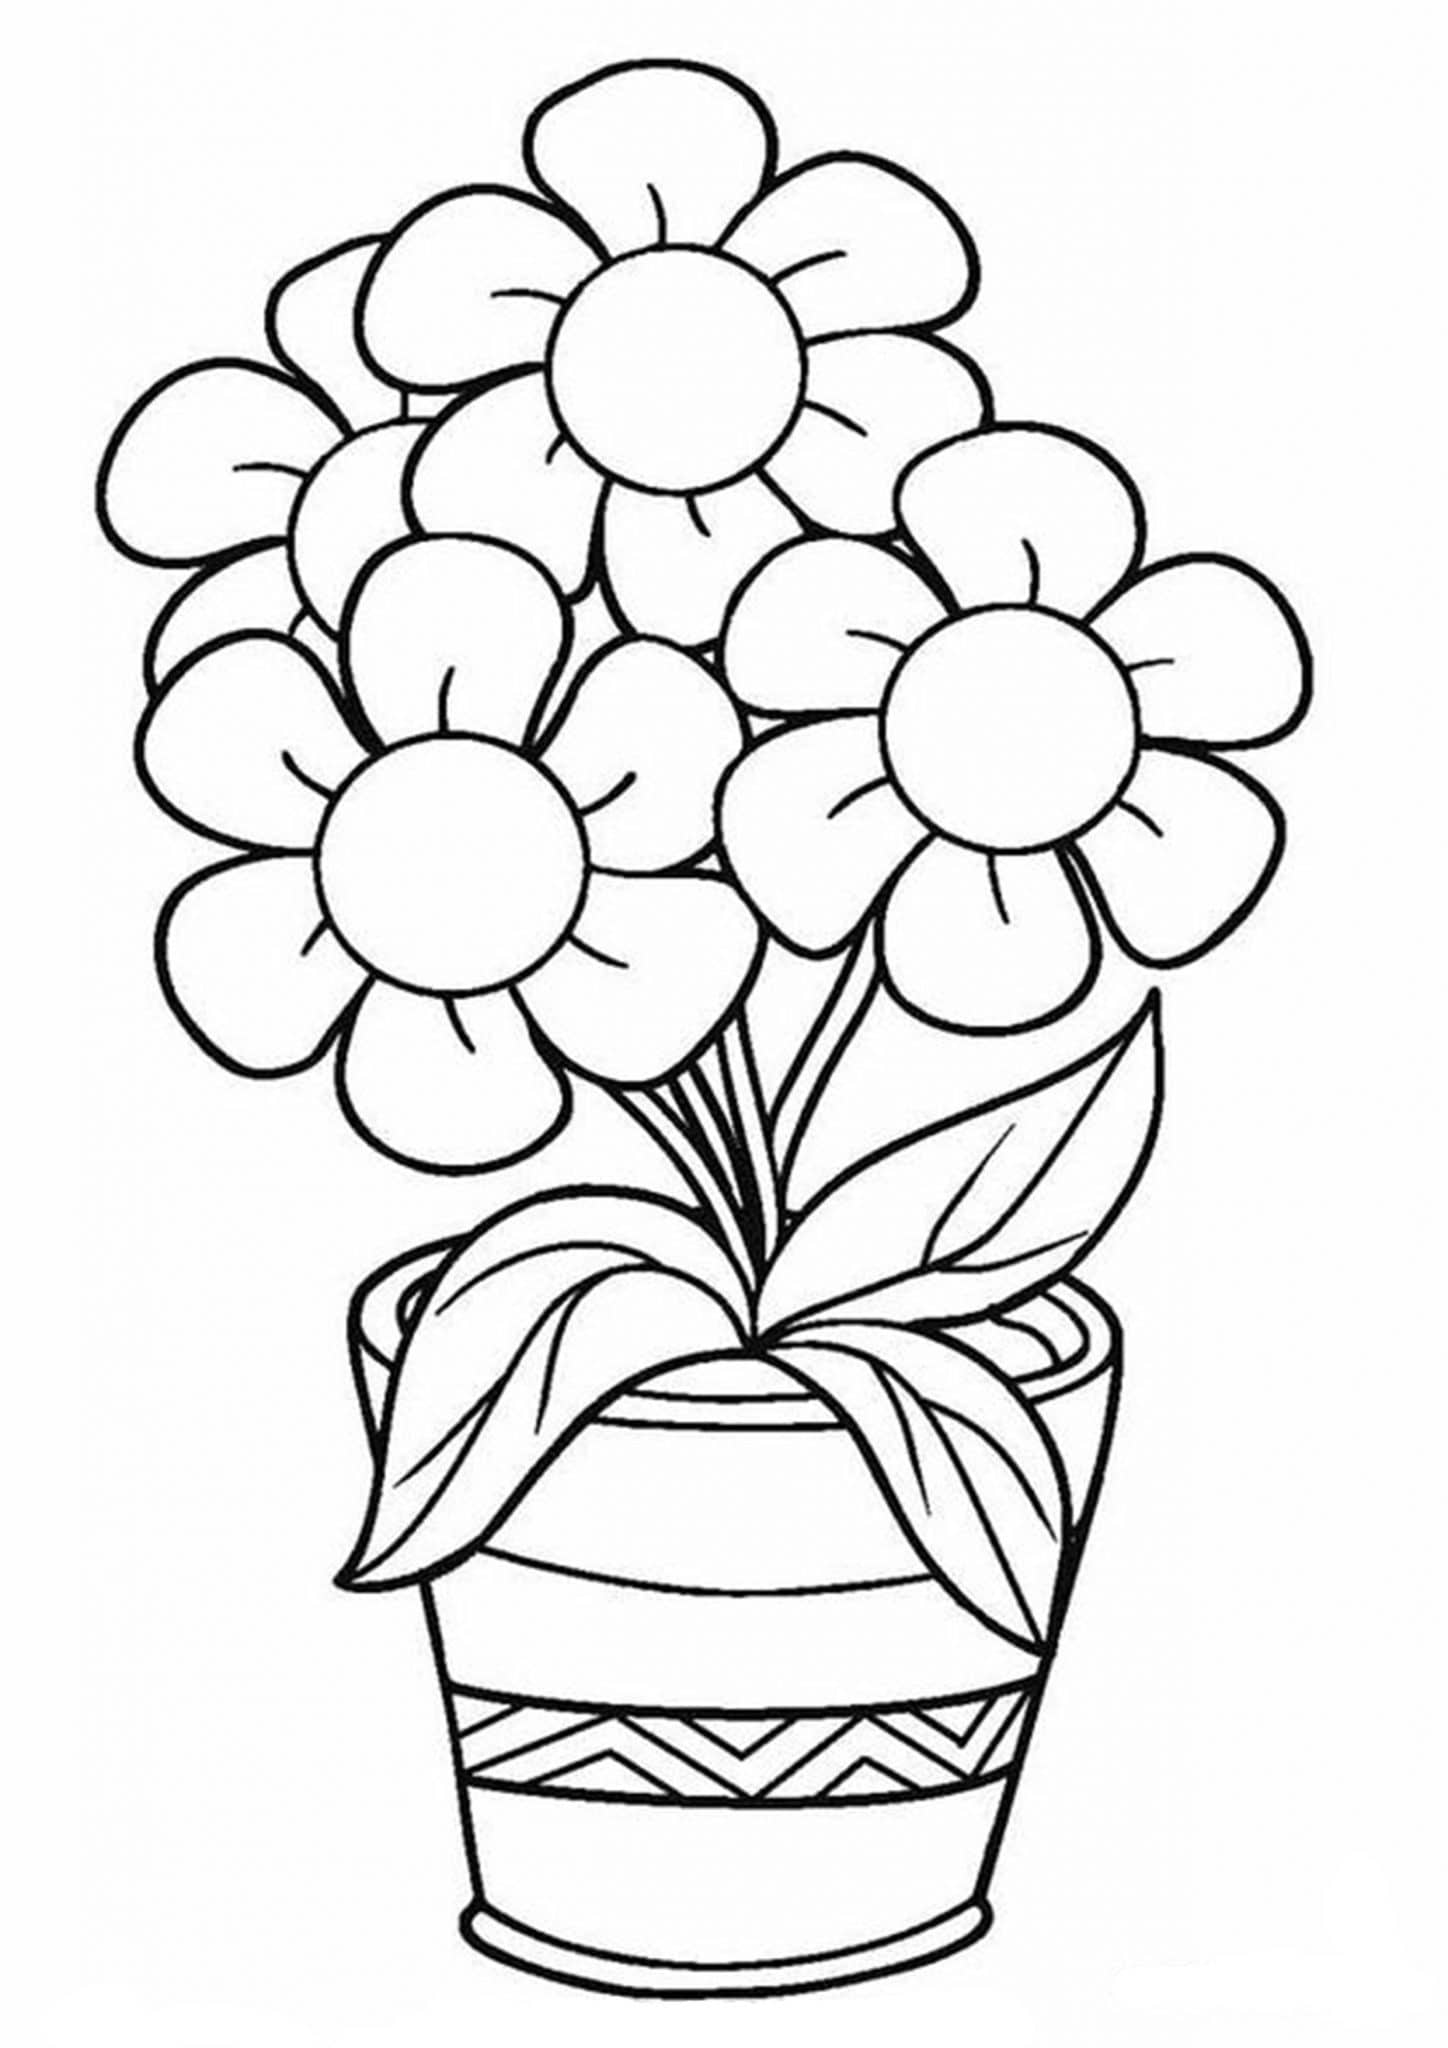 color page flower coloring pages flower free printable coloring pages page flower color